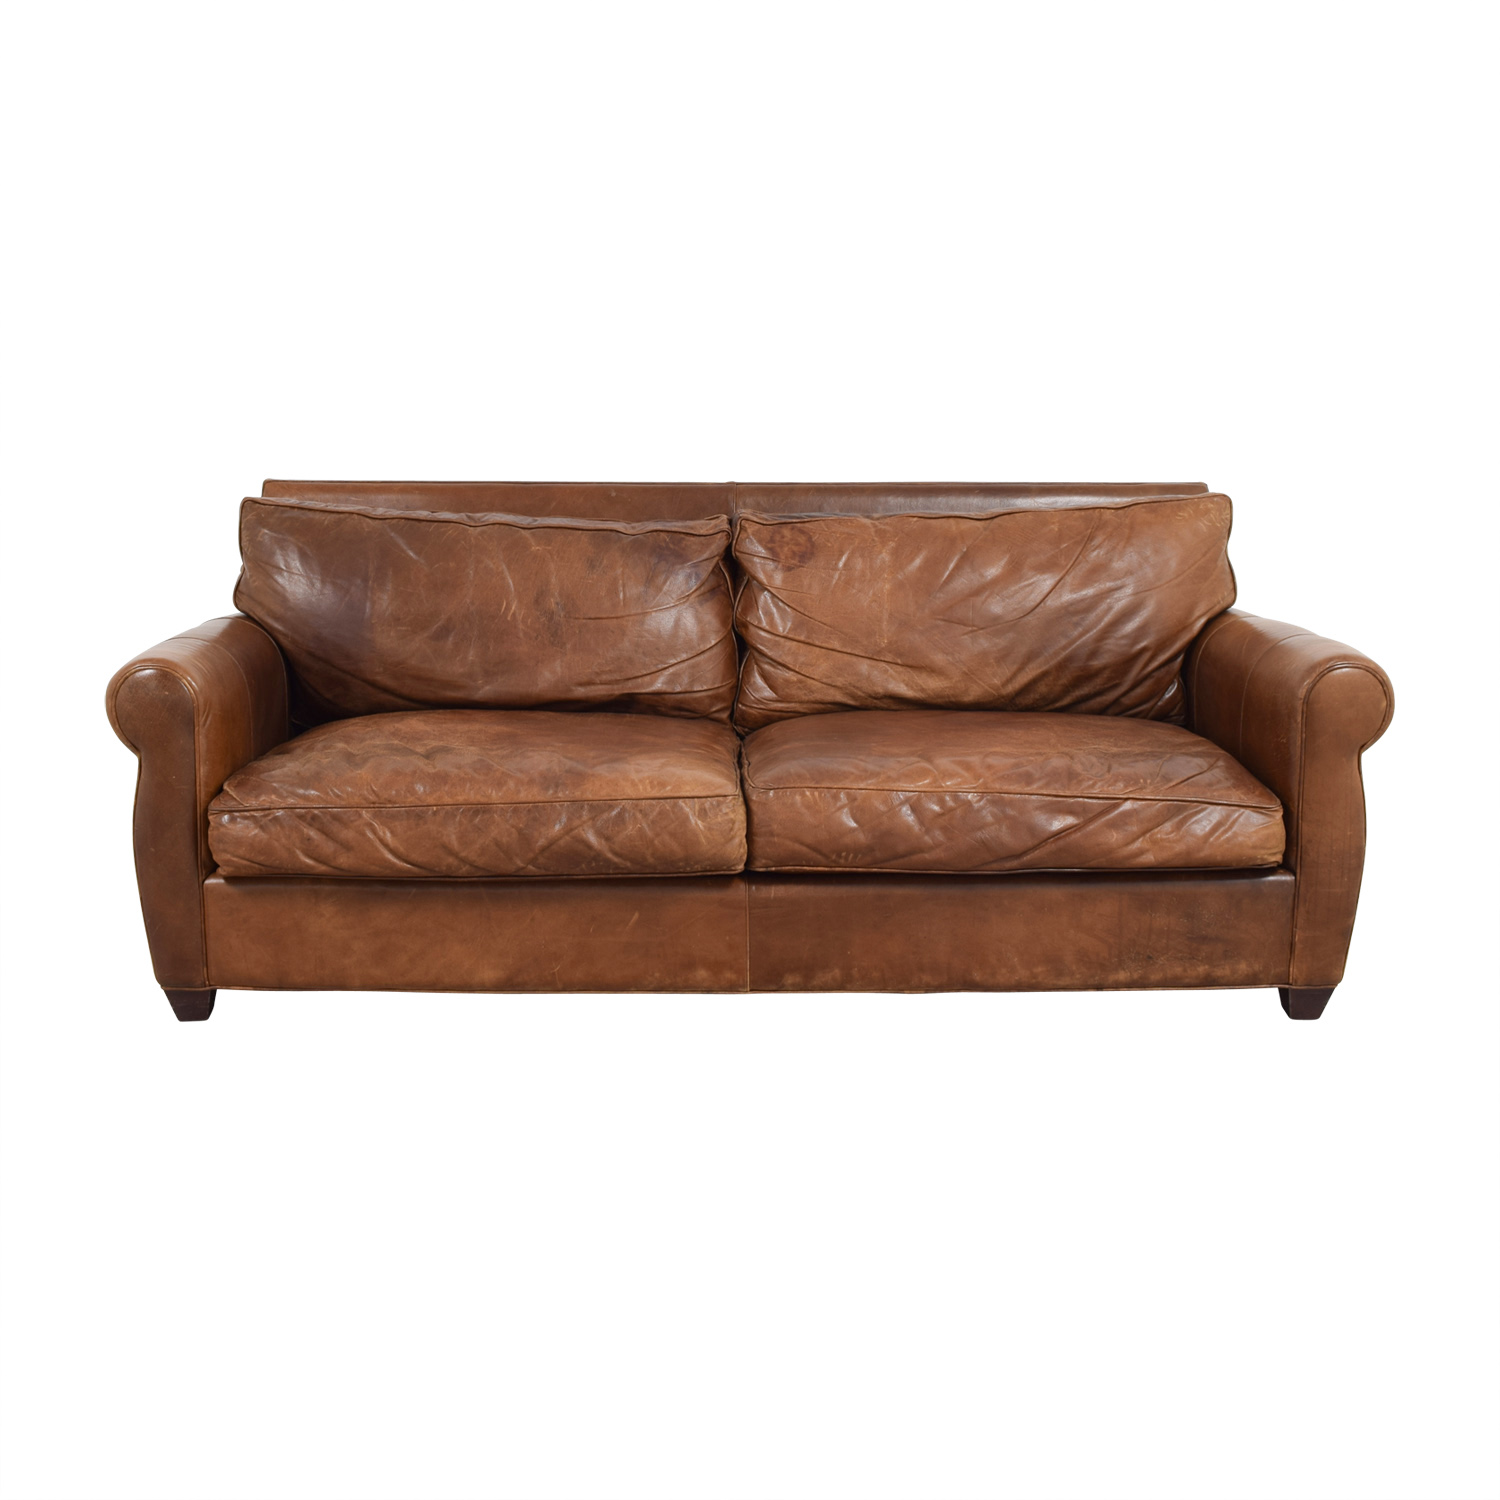 Arhaus Arhaus Rust Leather Two-Cushion Sofa dimensions